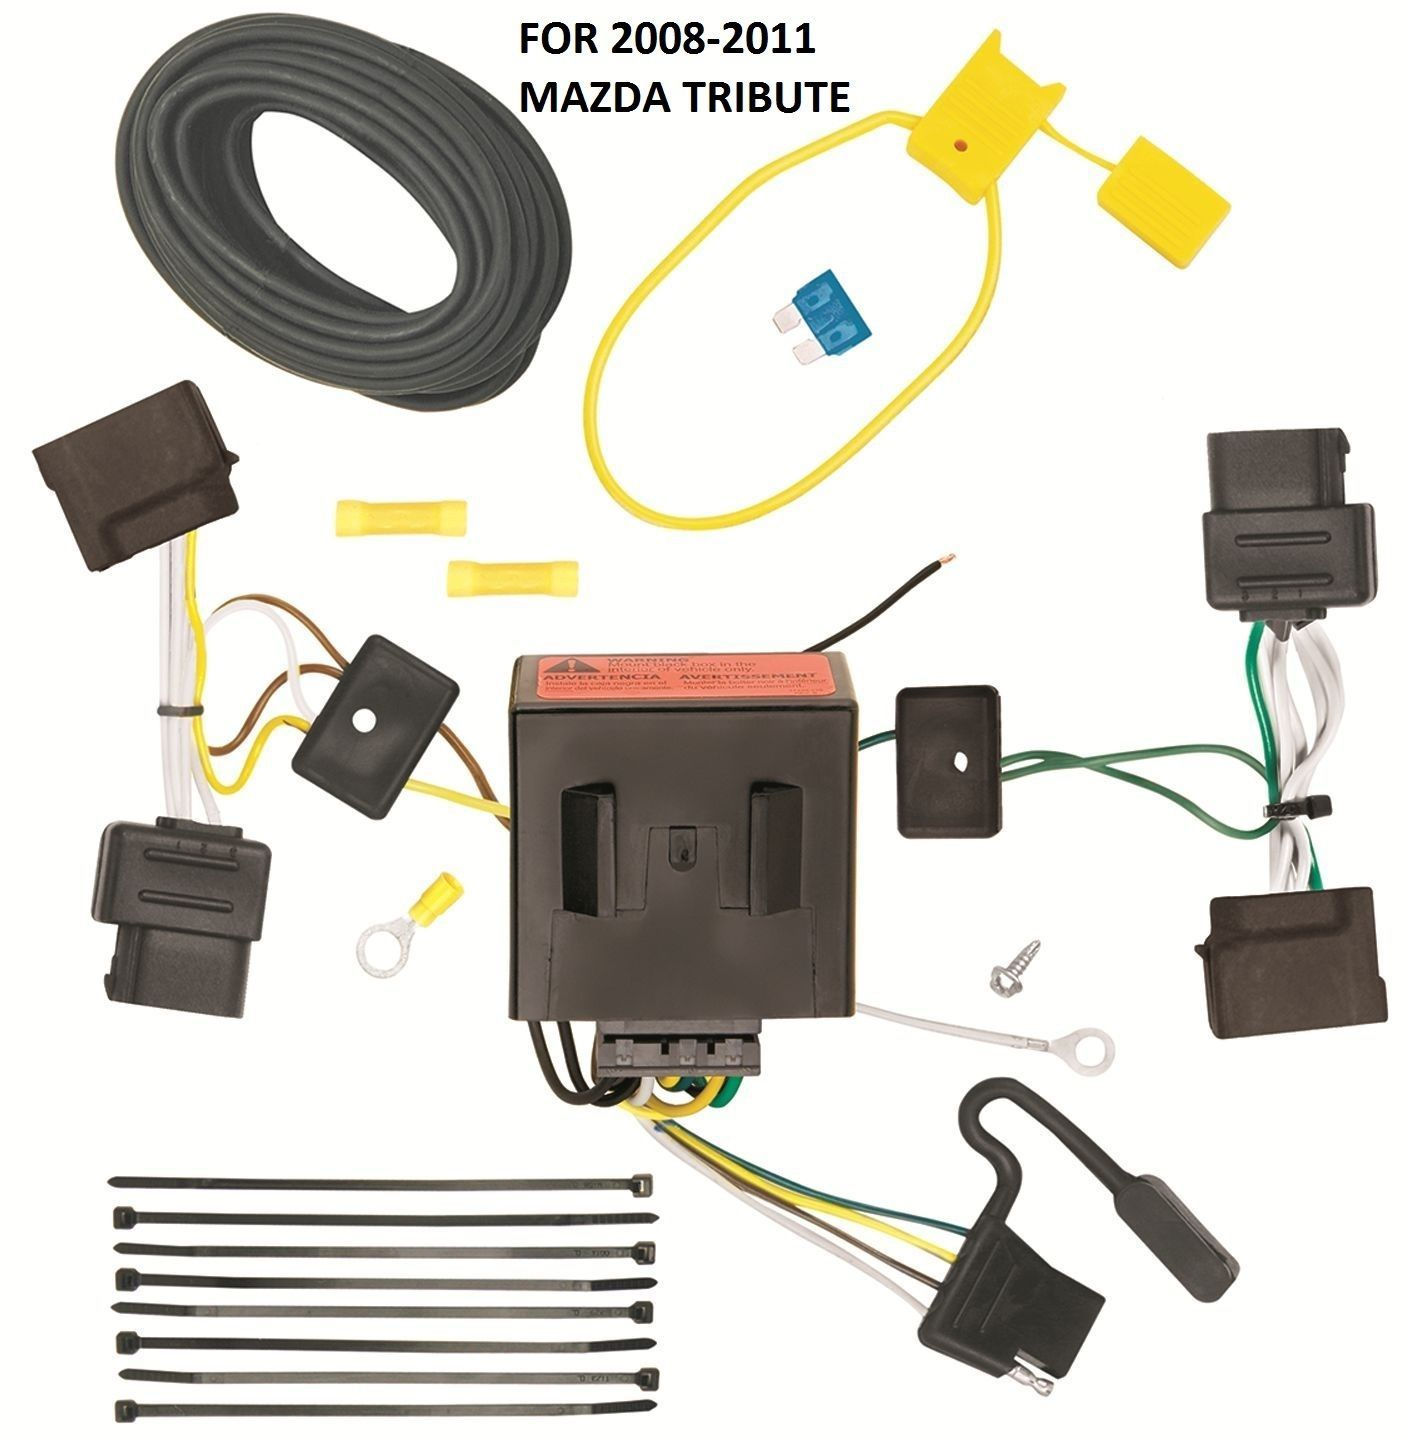 2008 2011 mazda tribute trailer hitch wiring kit harness. Black Bedroom Furniture Sets. Home Design Ideas